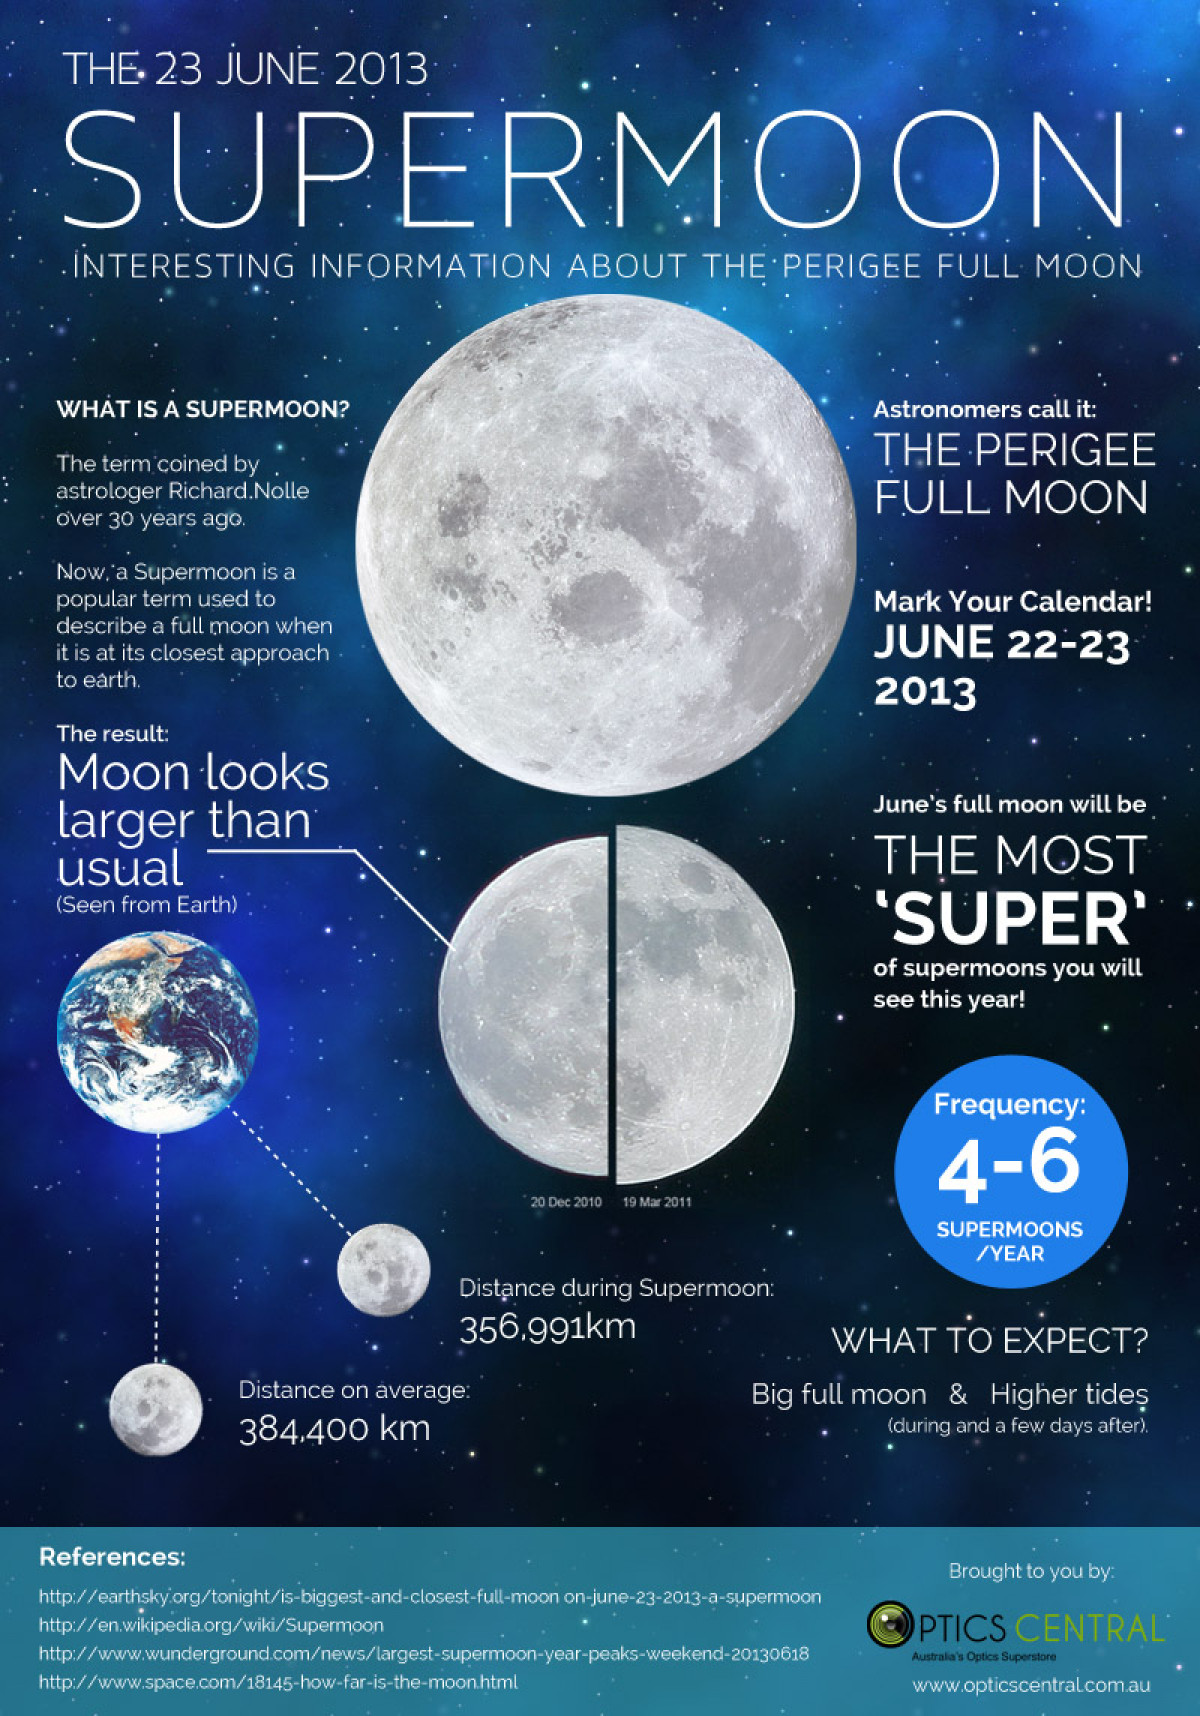 The 23 June 2013 Supermoon